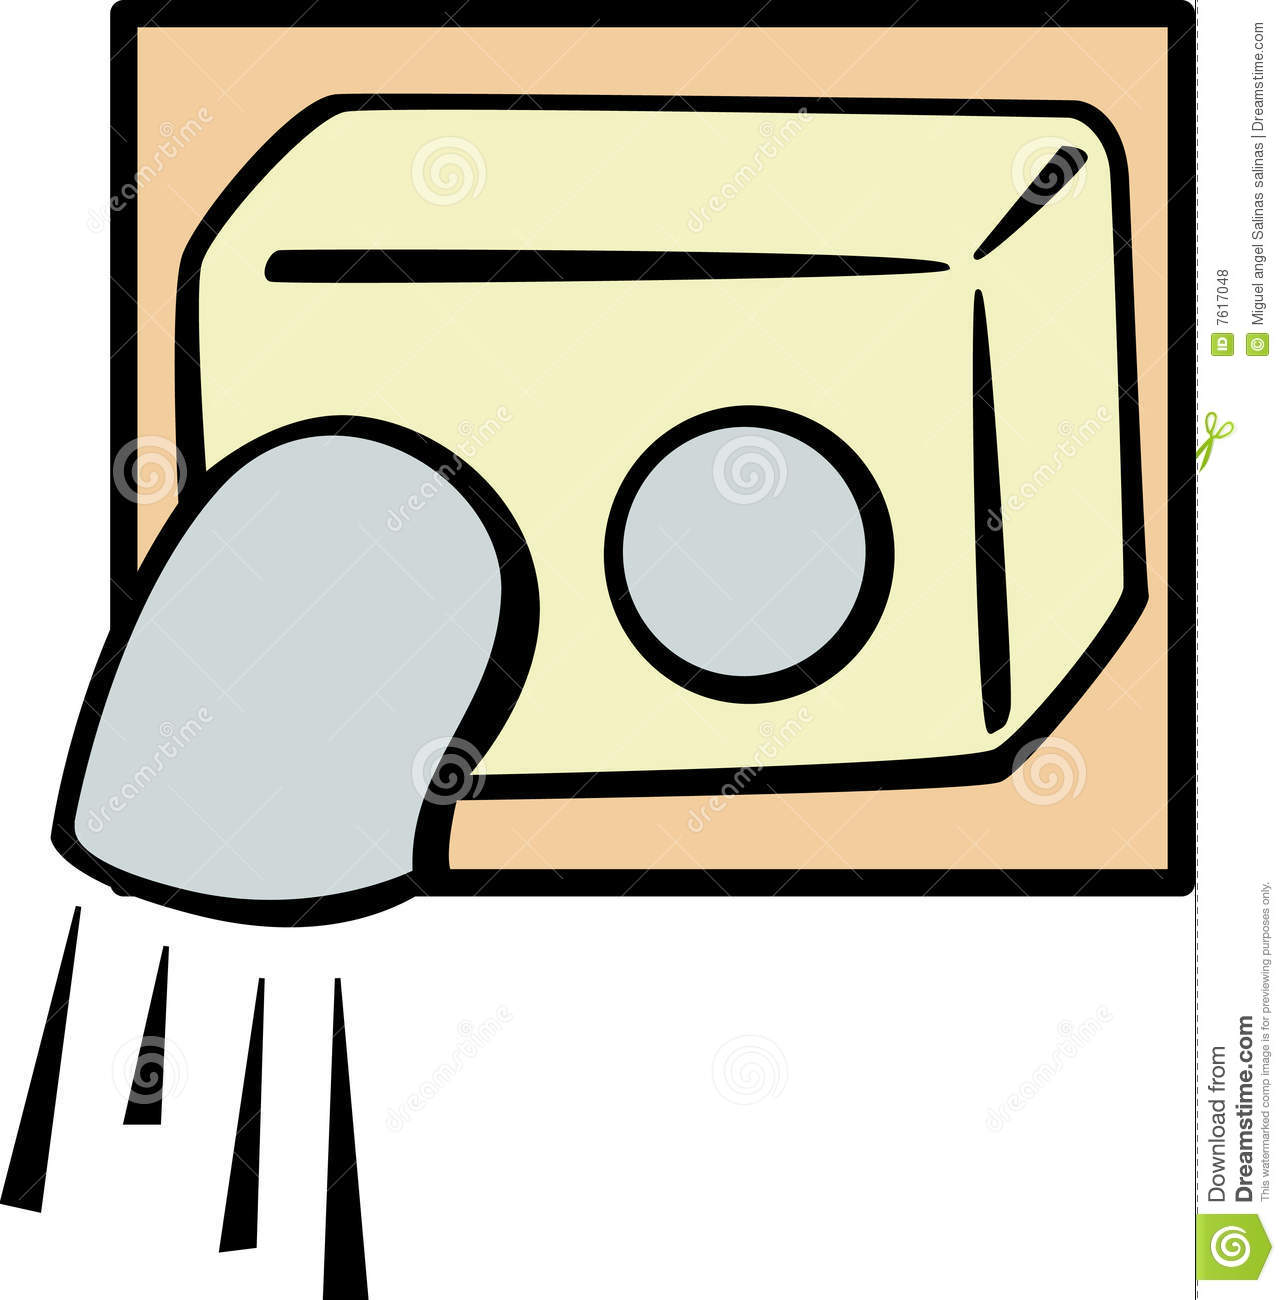 Bathroom Air Blower Vector Illustration Stock Photo.